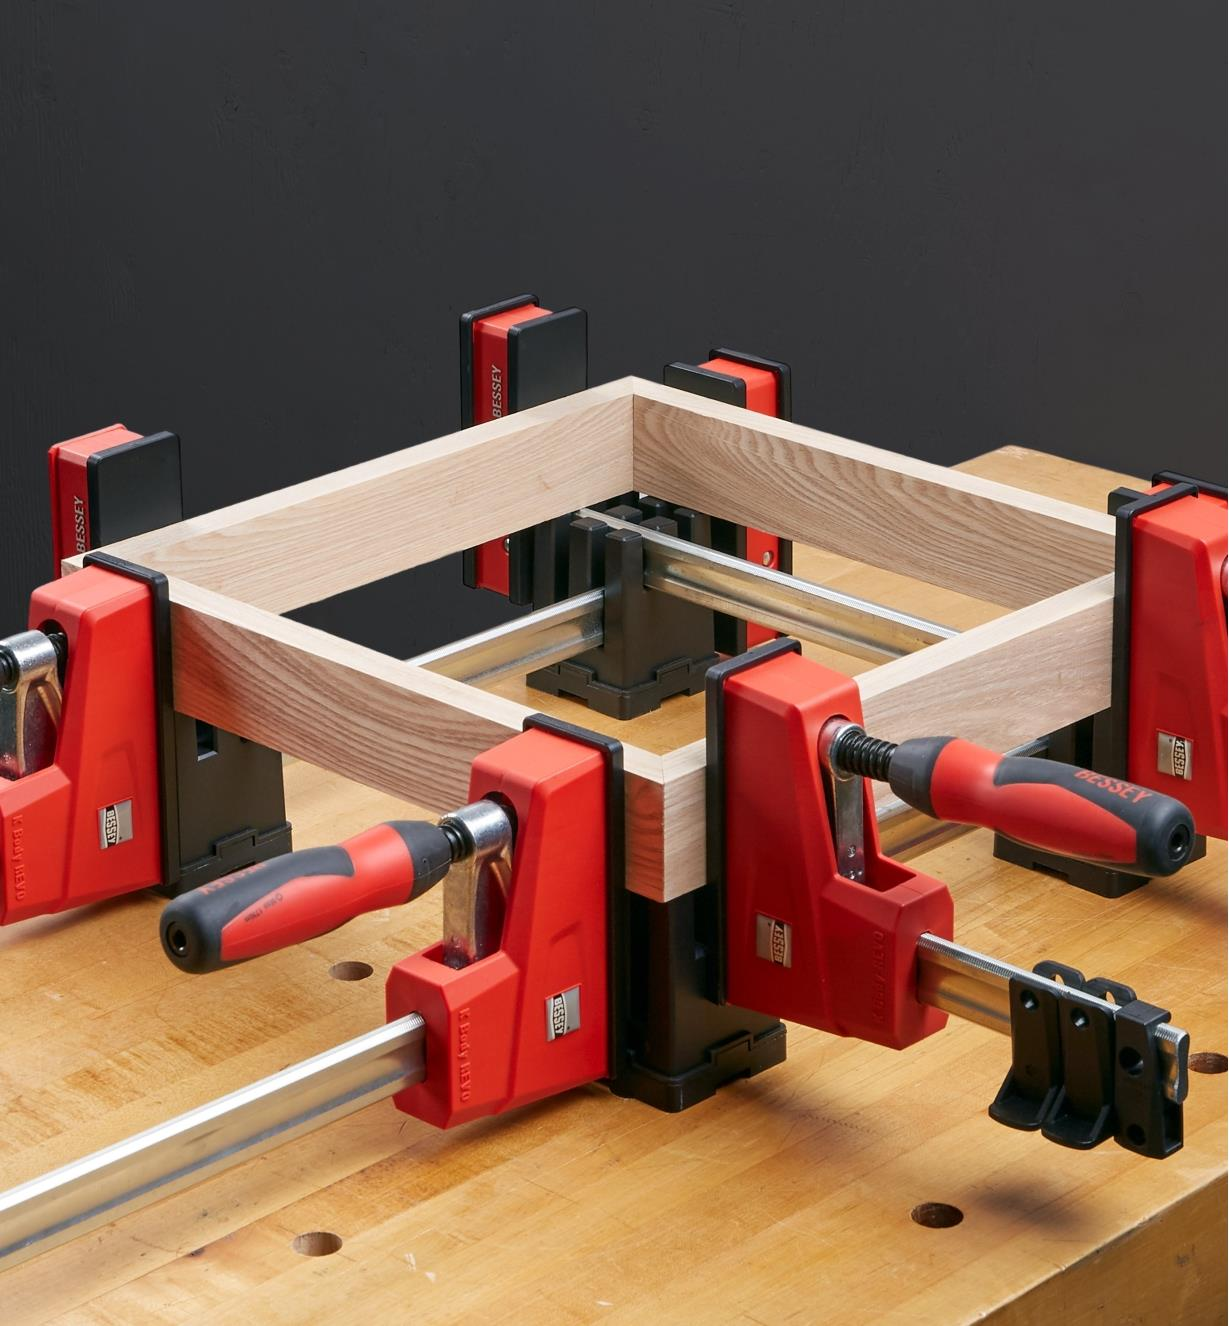 Bessey KP blocks used to hold clamps criss-crossed for holding a framing project